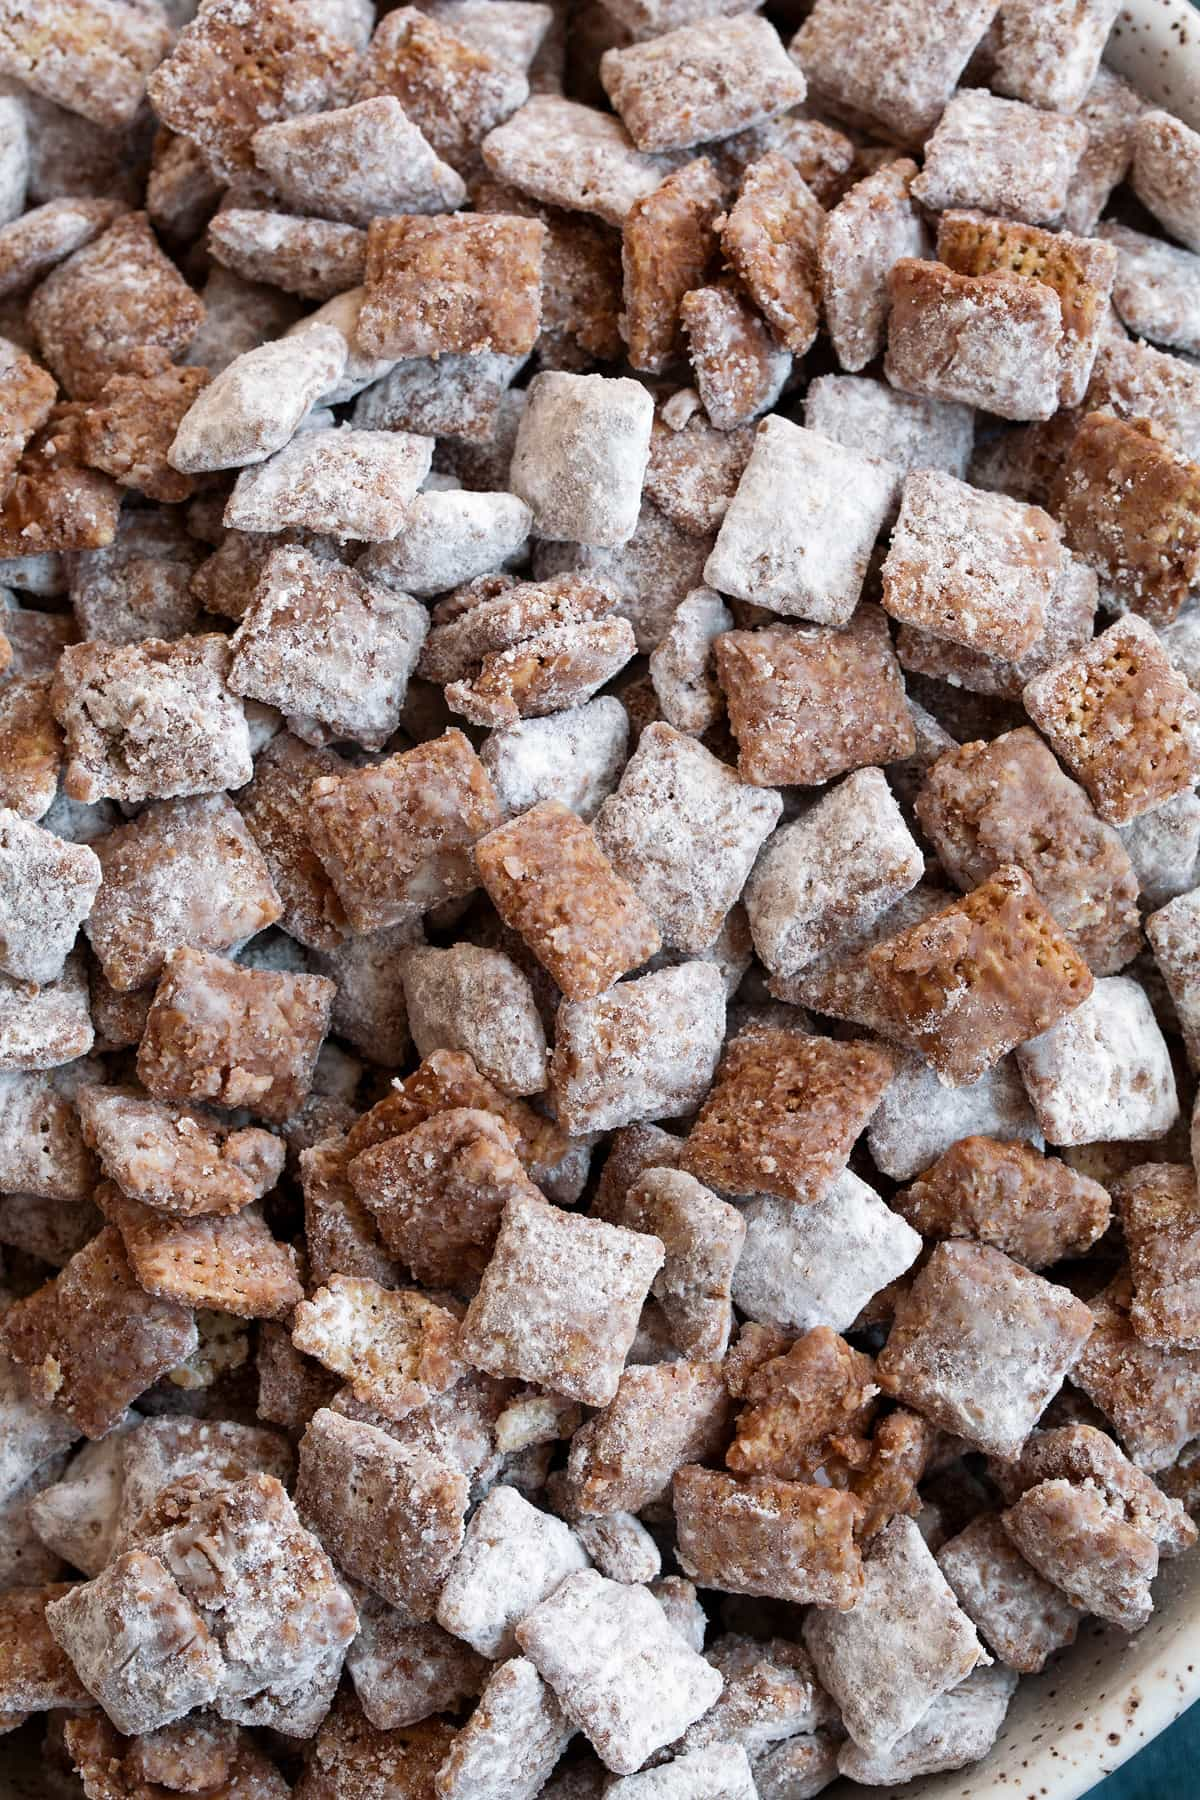 Close up image of muddy buddies showing texture of chocolate coating, powdered sugar and cereal.